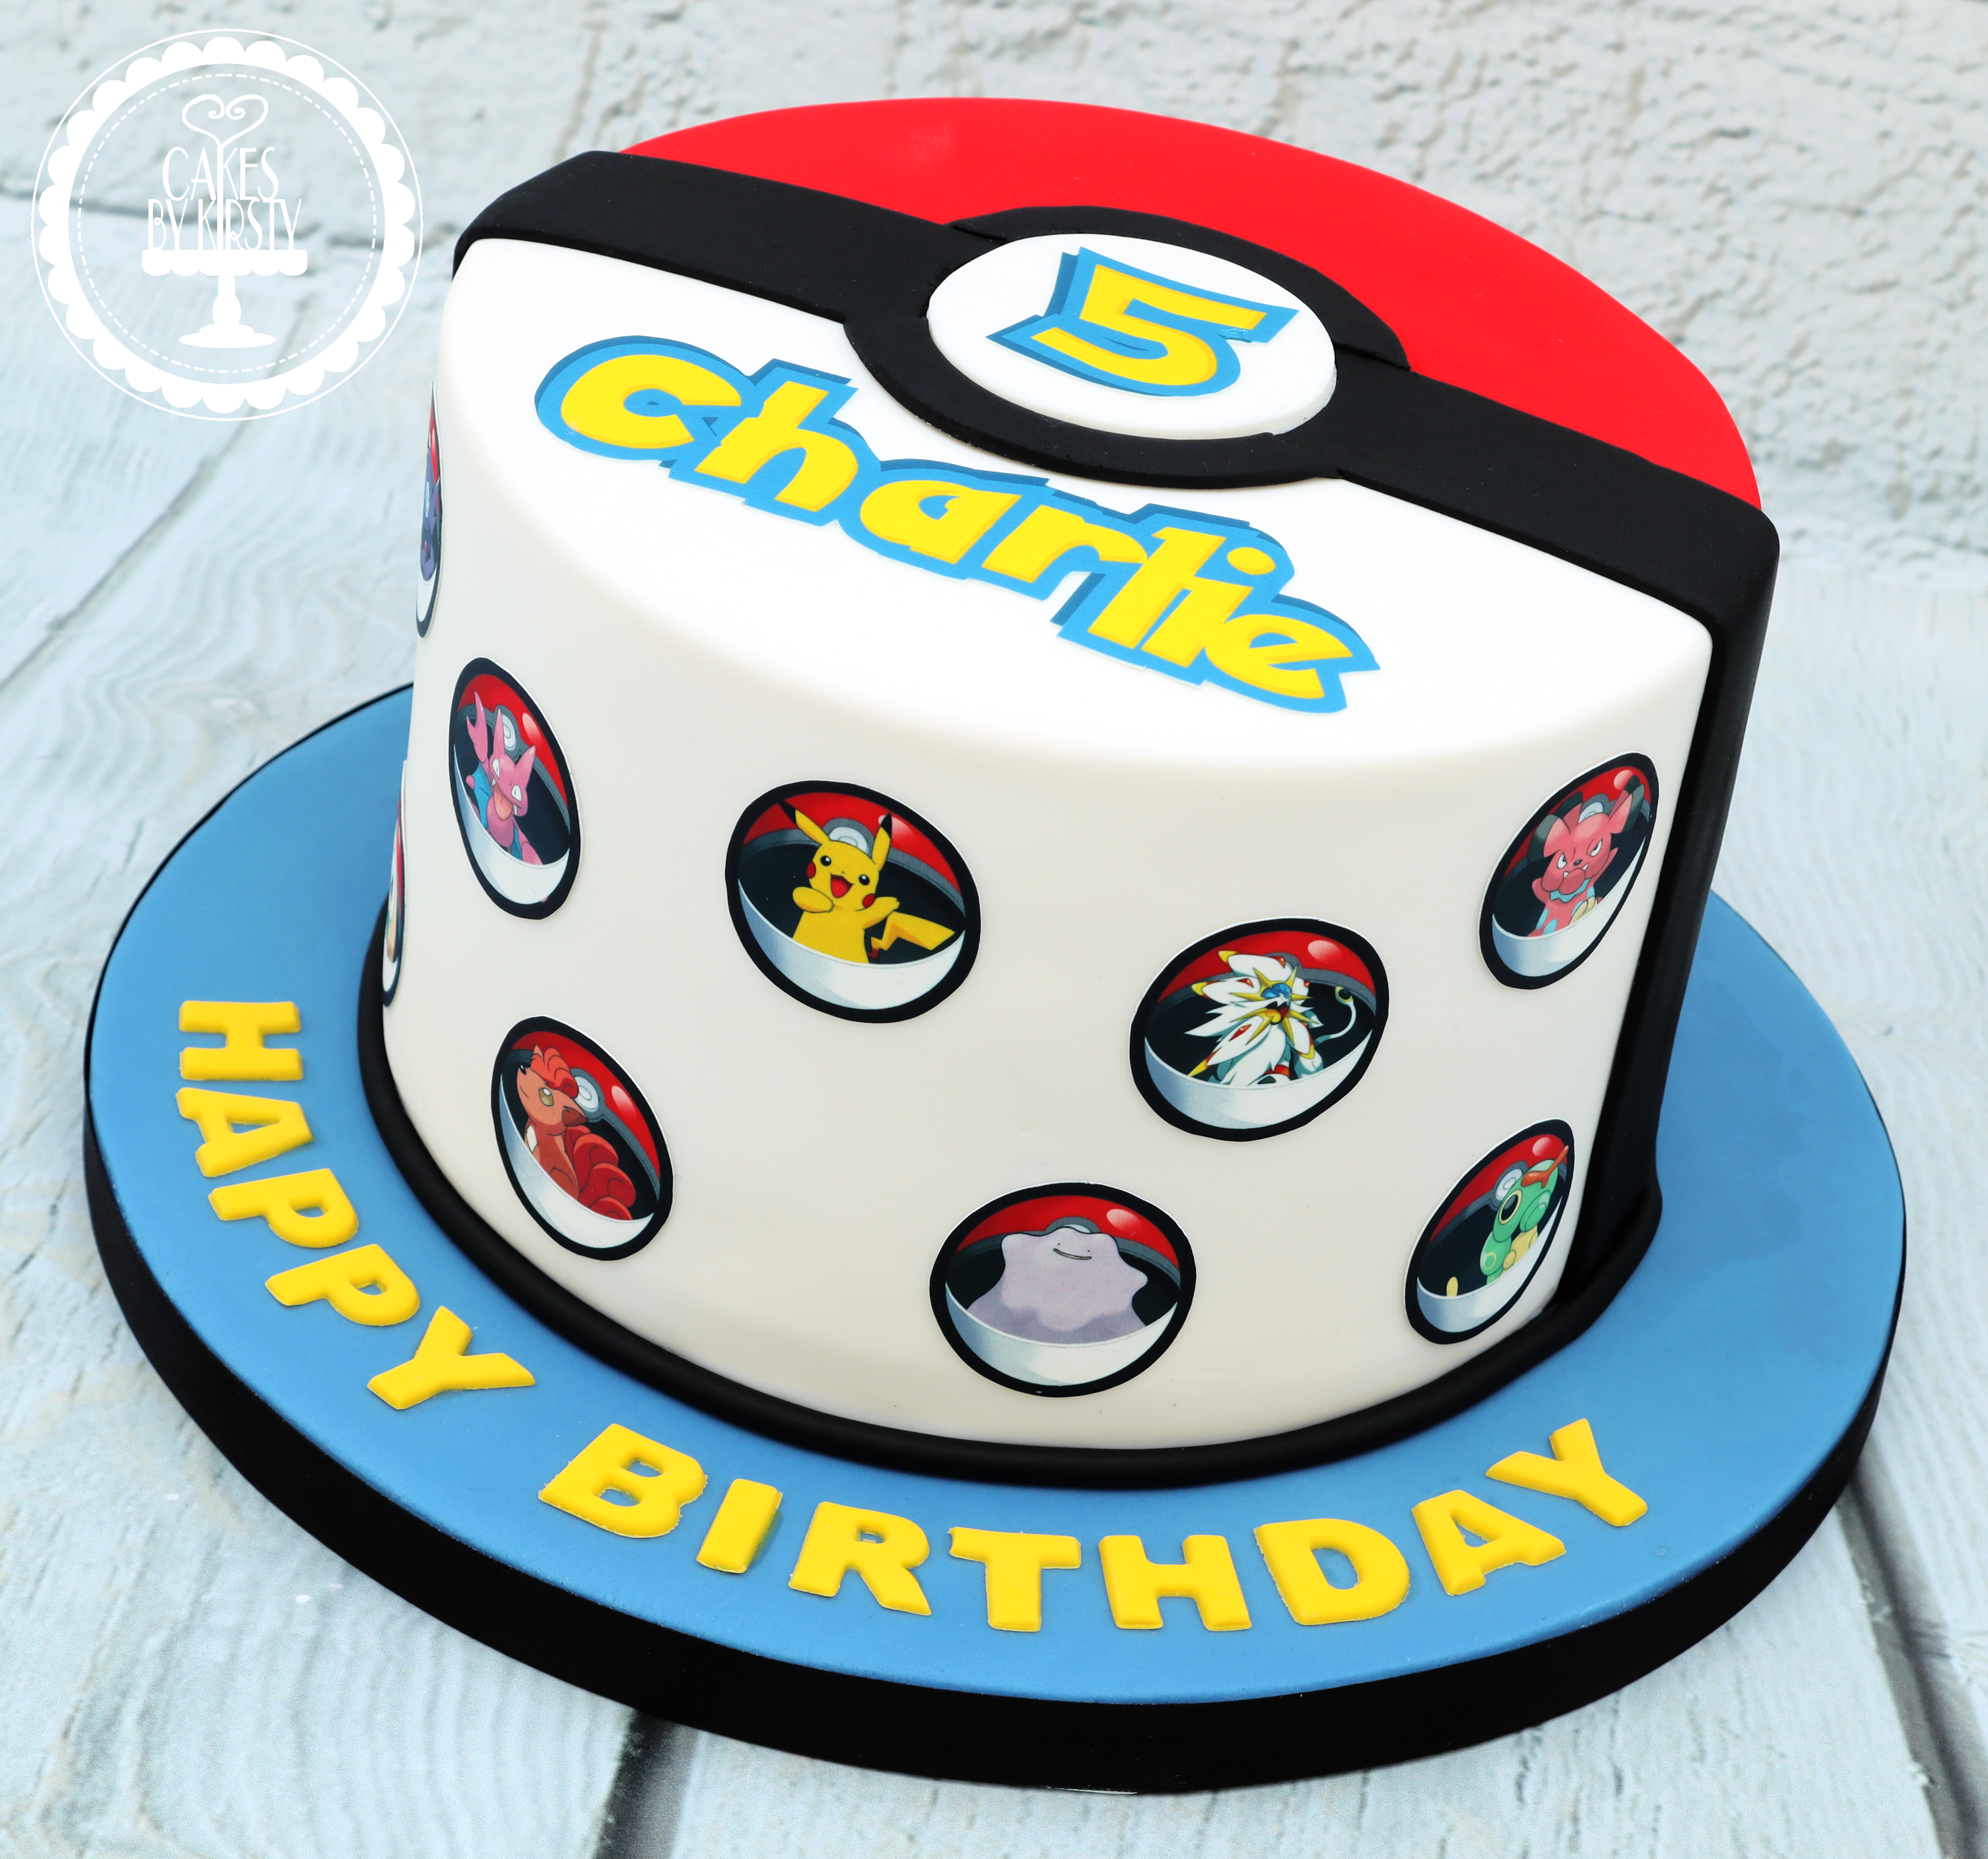 Astounding Cakes By Kirsty Childrens Cakes Funny Birthday Cards Online Bapapcheapnameinfo